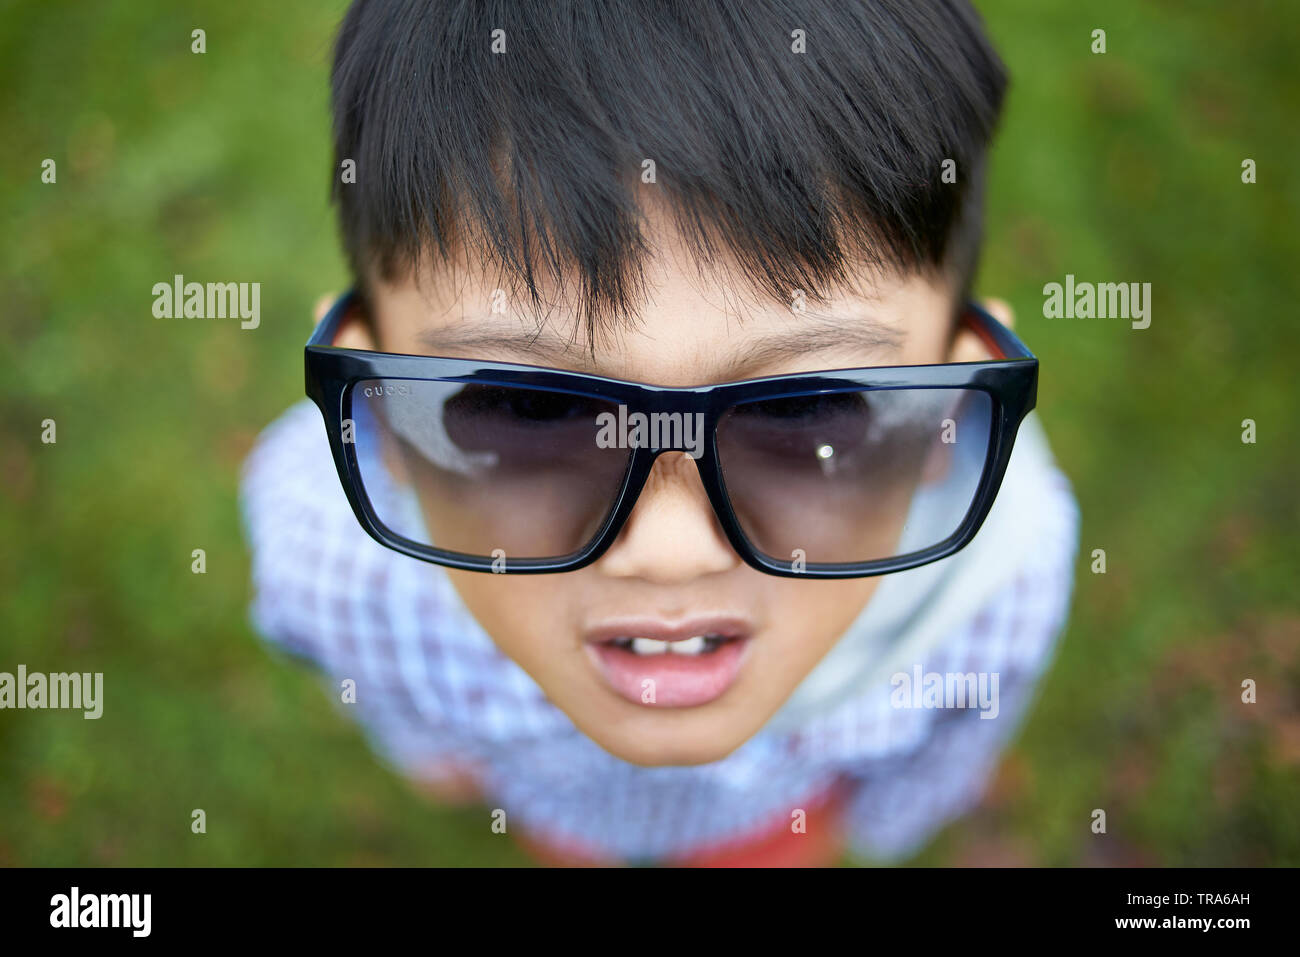 Portrait of an adorable little Asian boy with big brown eyes in a park in autumn wearing designer luxury sunglasses - Stock Image